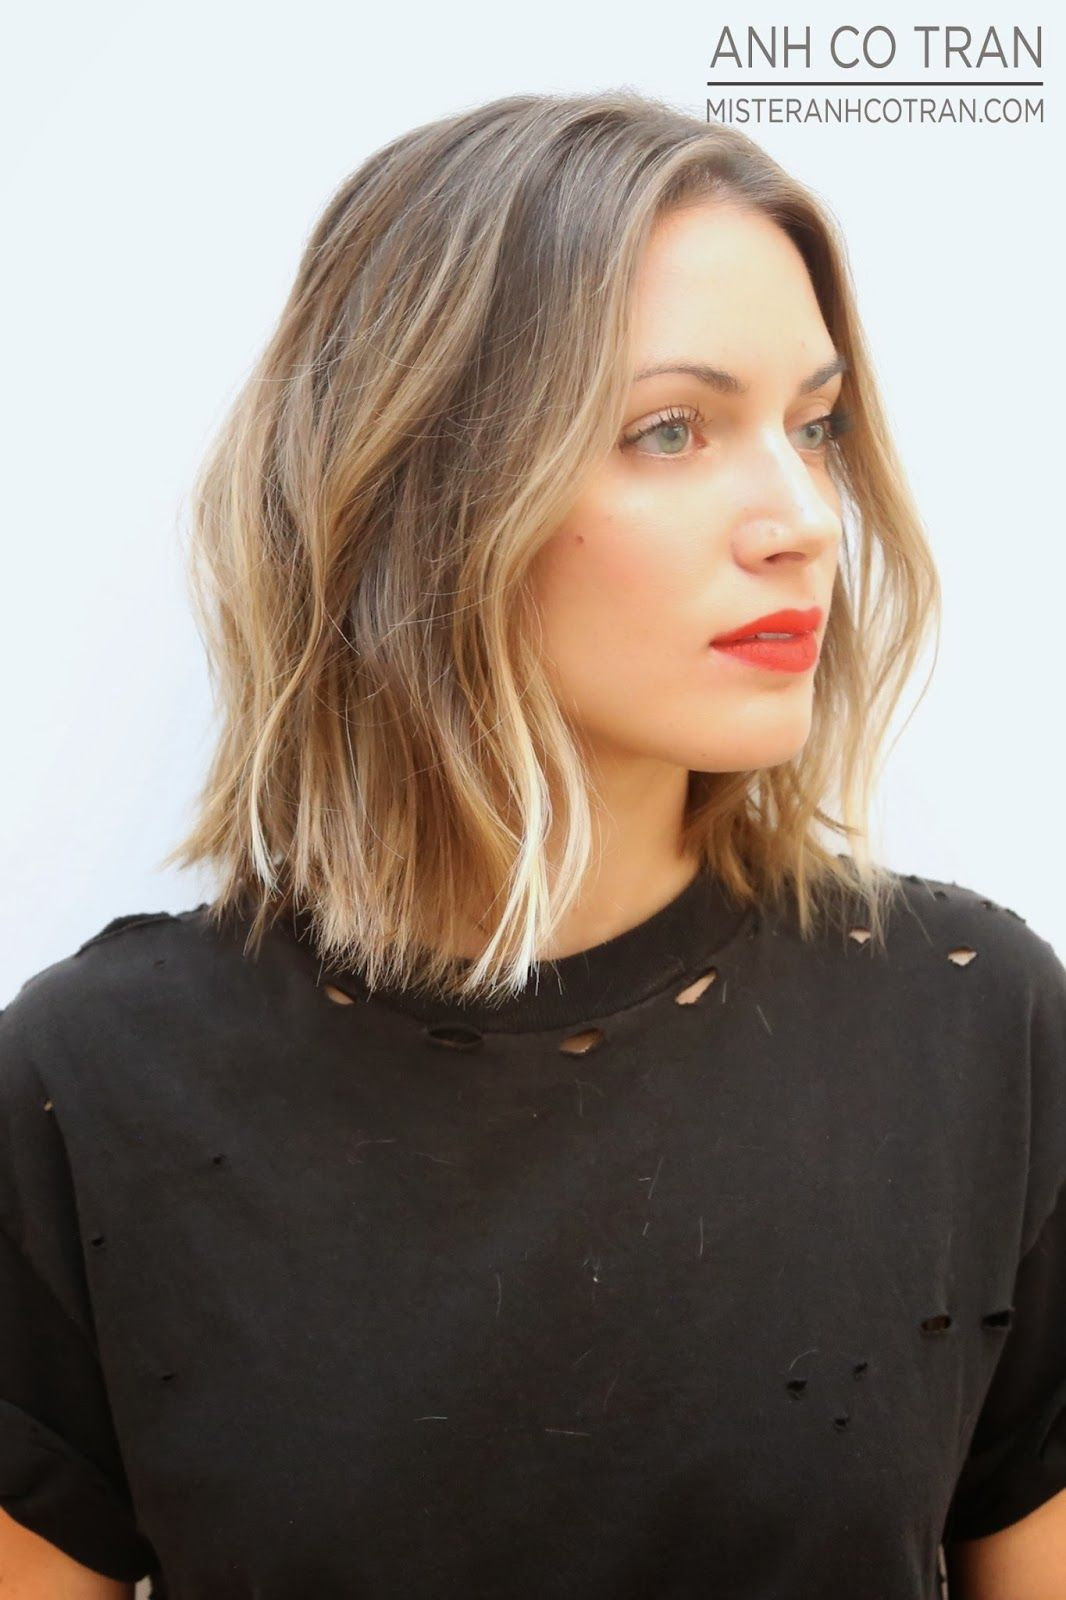 LA: PERFECT FROM ALL ANGLES AT RAMIREZ|TRAN SALON